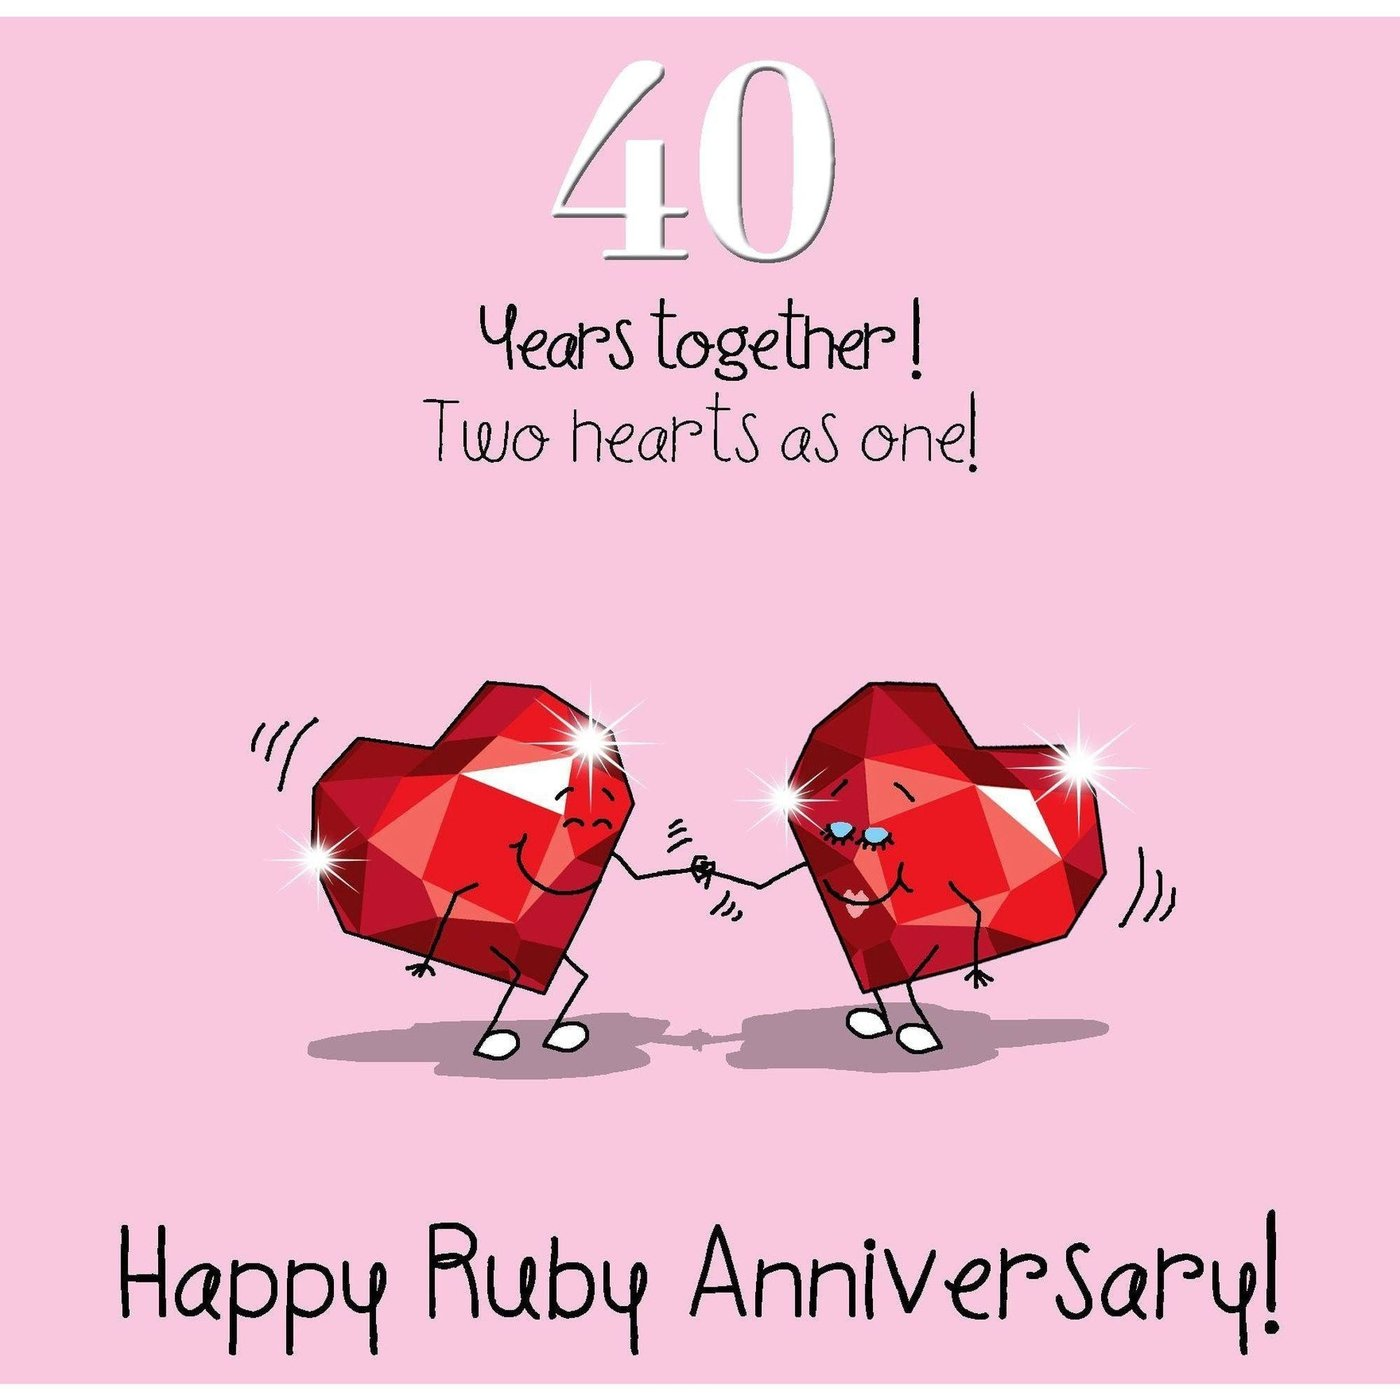 Gem clipart ruby wedding anniversary. Fax potato th greetings